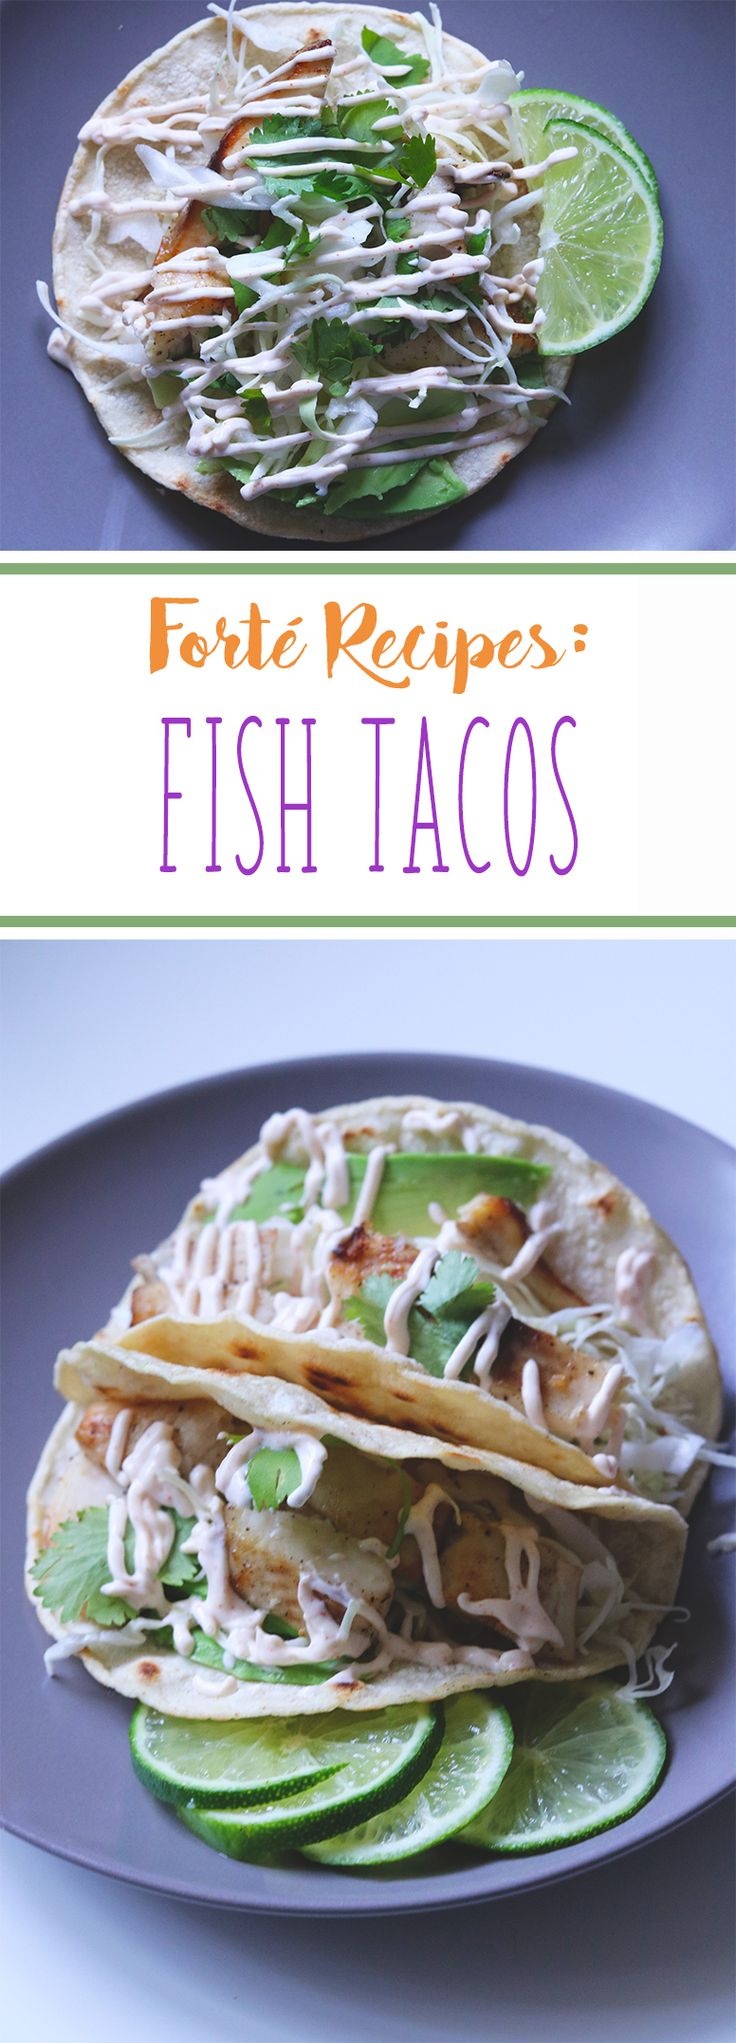 Here's another health and easy recipe that my family loves! We had fish tacos meal the first time at my cousin's house a few years ago and after that, we were all hooked. It is a great meal for lunch or dinner and contains a lot of essential nutrients for all the expecting moms out there. I hope you like our fish taco recipe.